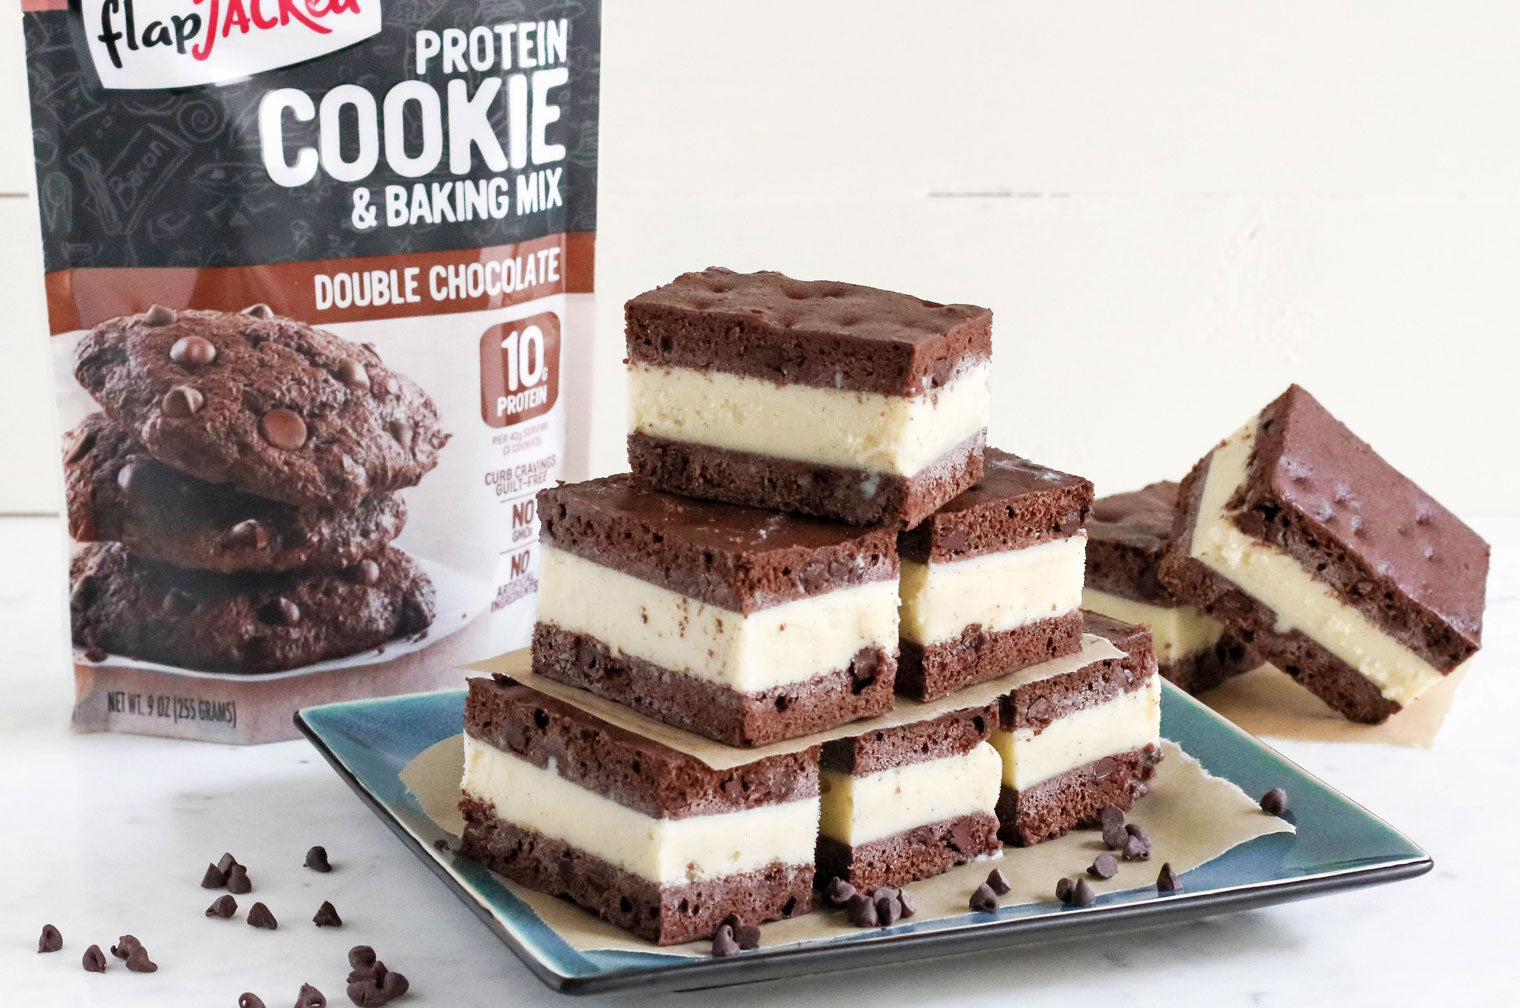 Protein cookie sandwiches